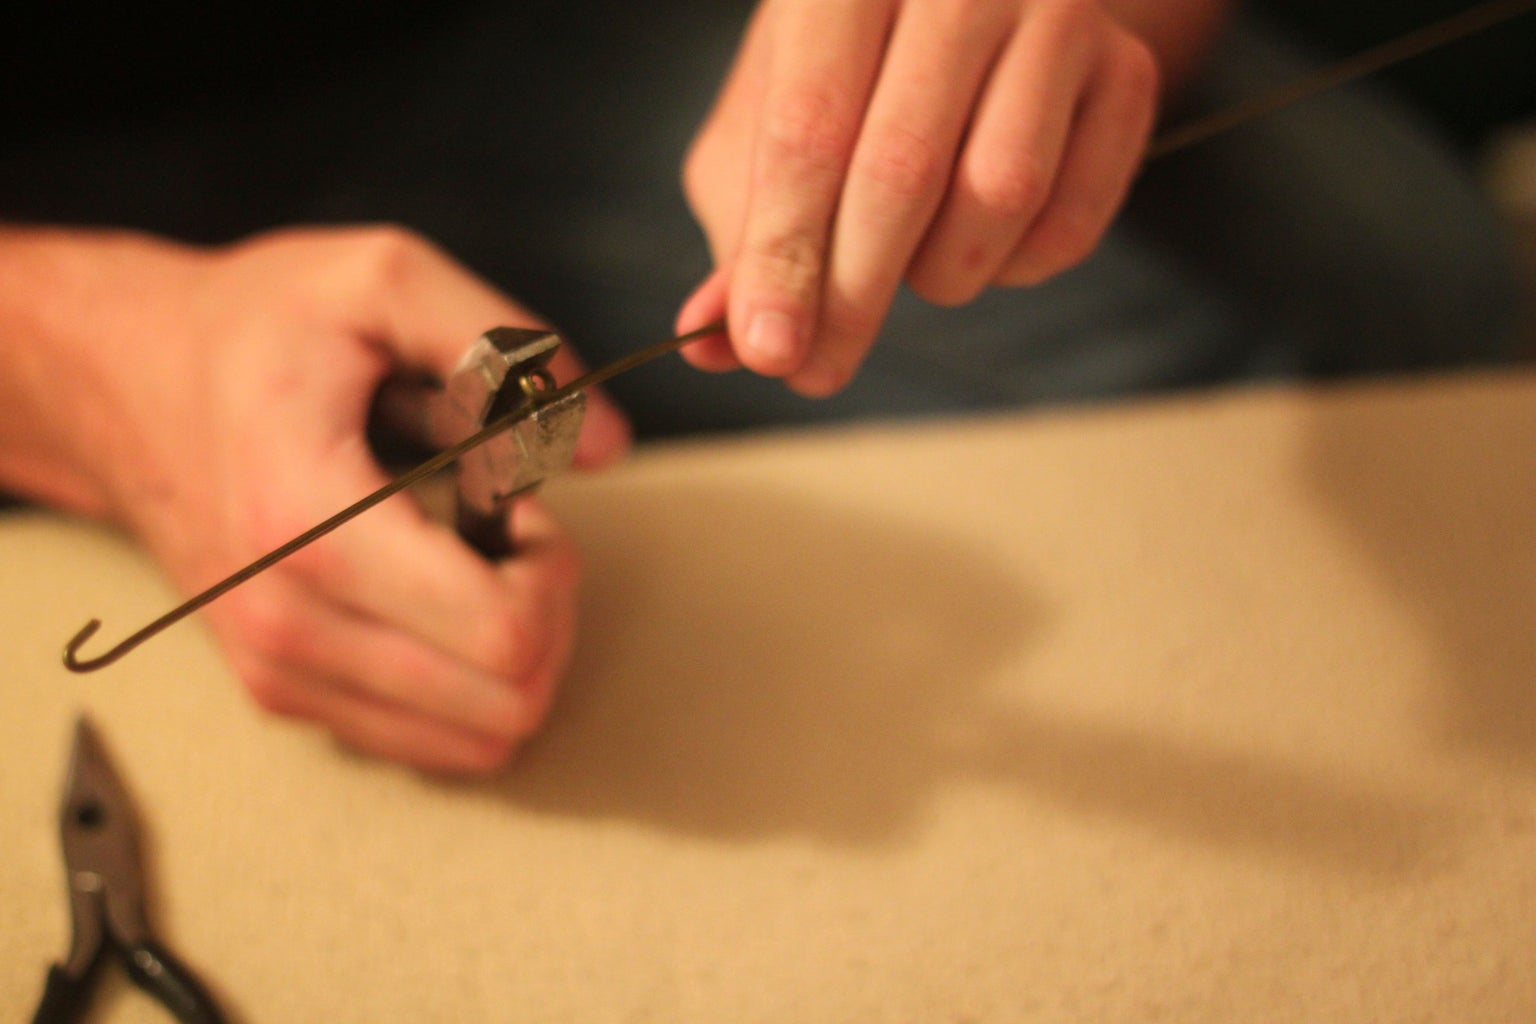 Forming the Wire Hanger